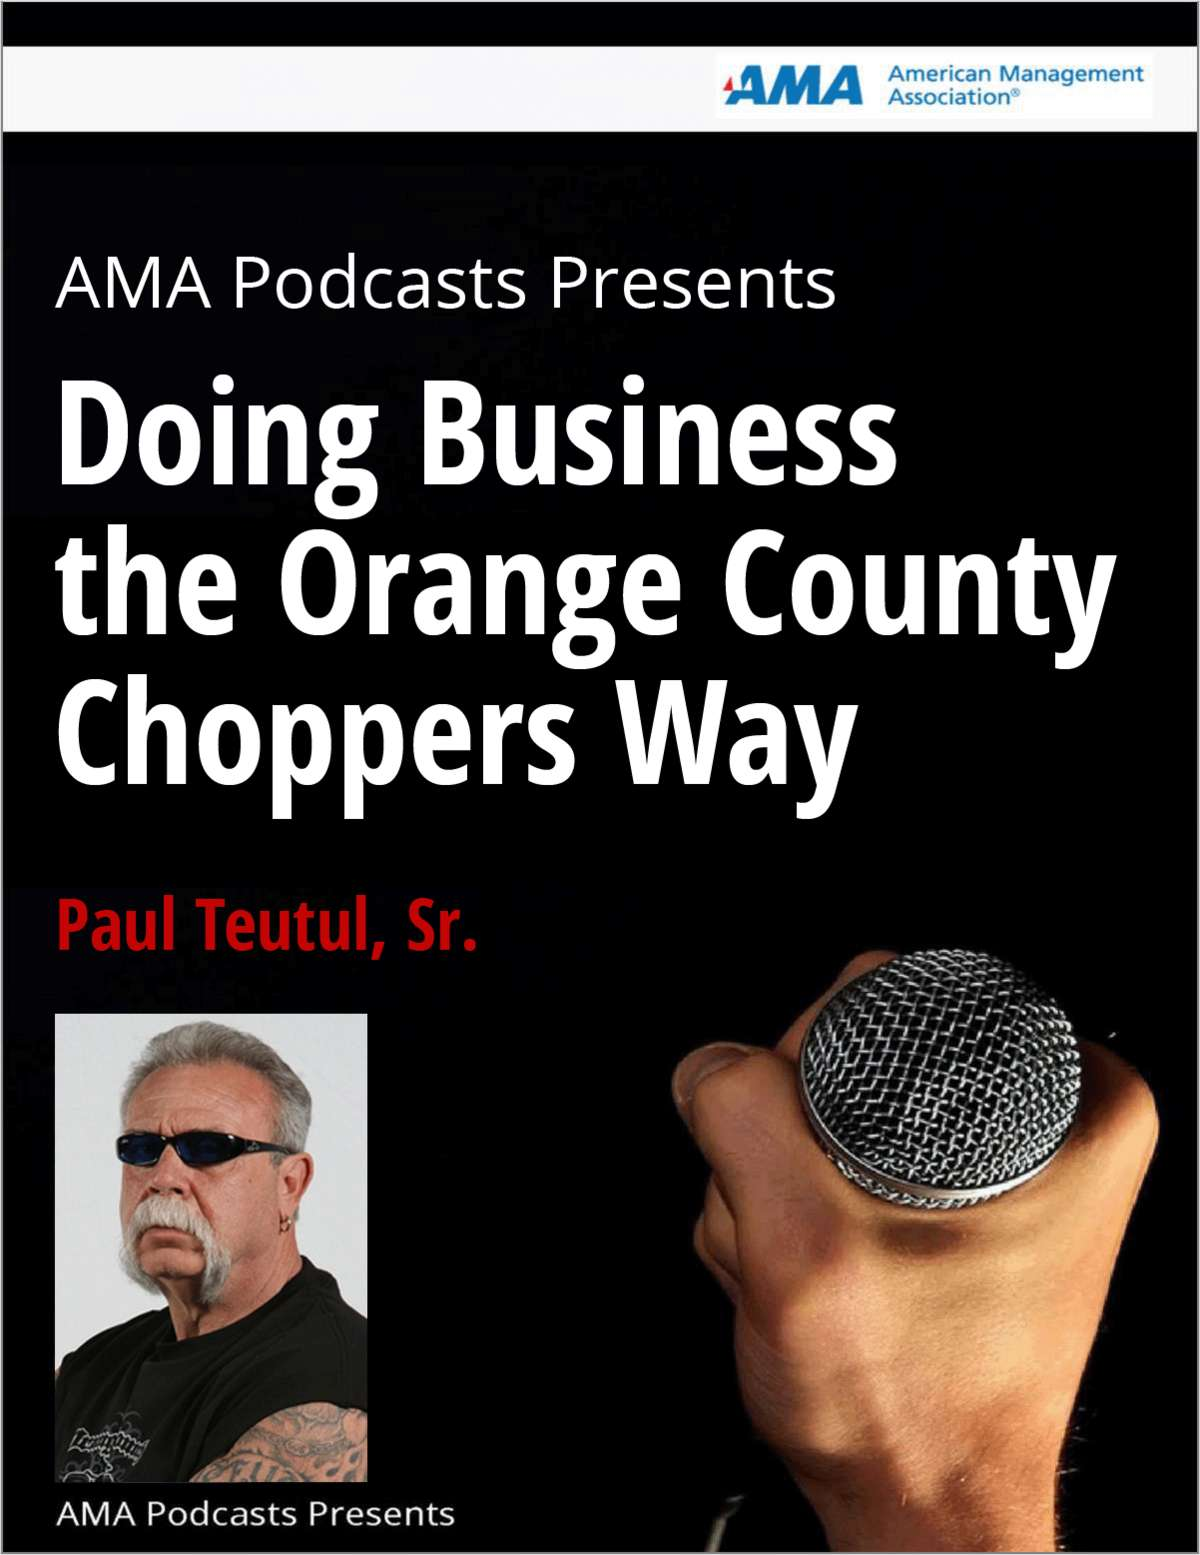 Paul Teutul, Sr. on Doing Business the Orange County Choppers Way